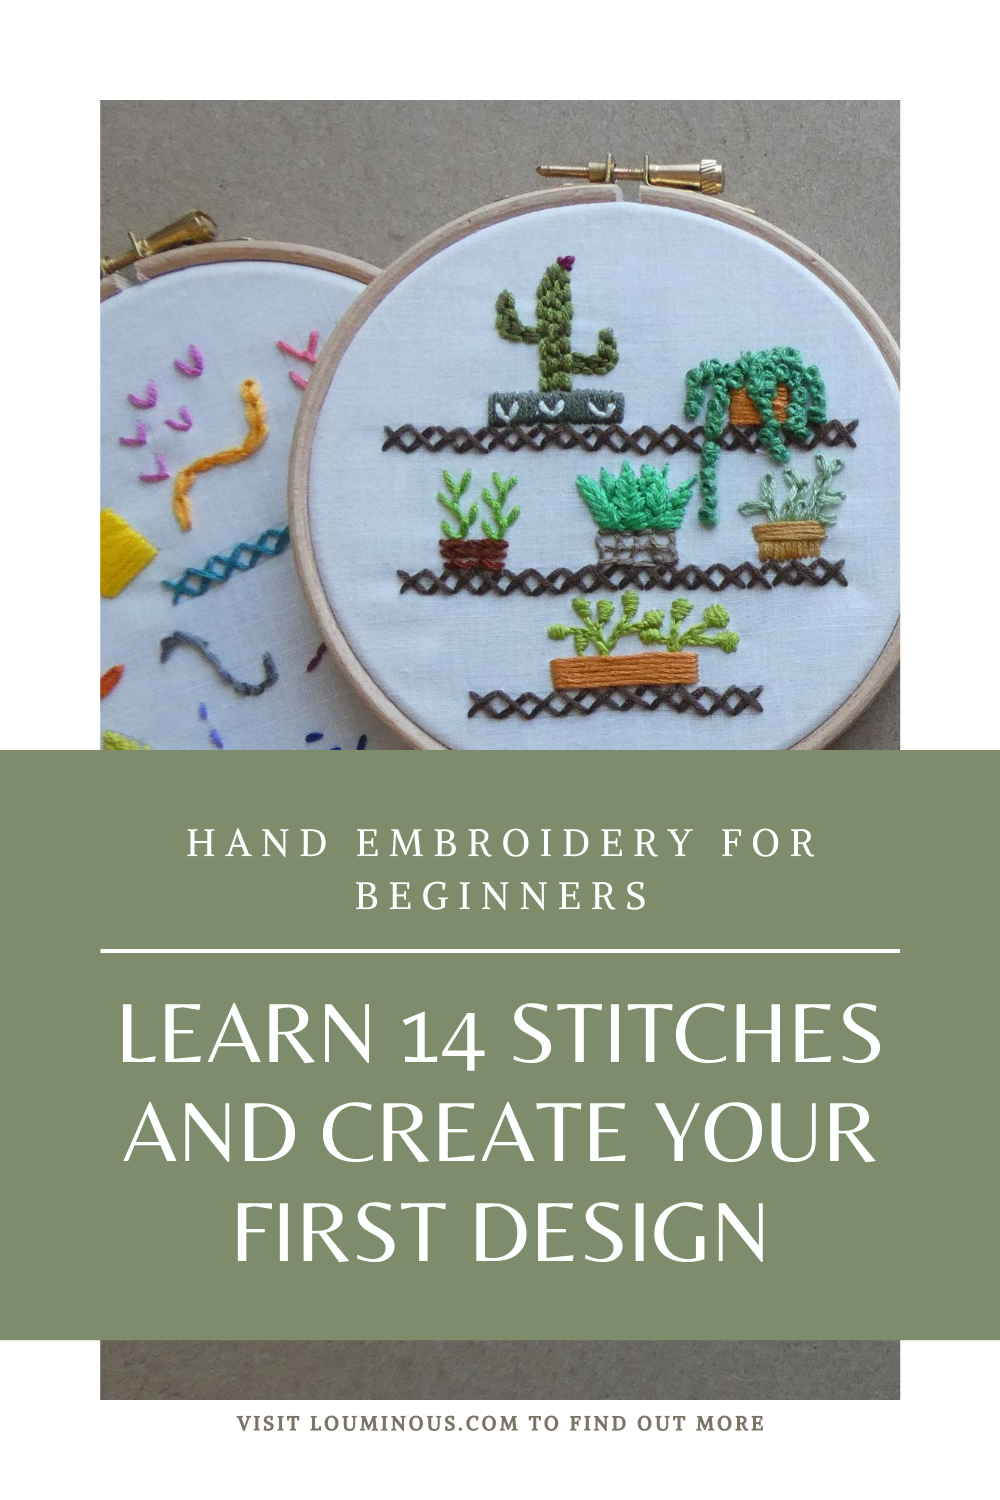 Hand Embroidery For Beginners Step By Step Learn 14 Stitches And Create Your First Desi In 2020 Embroidery For Beginners Hand Embroidery Patterns Free Hand Embroidery